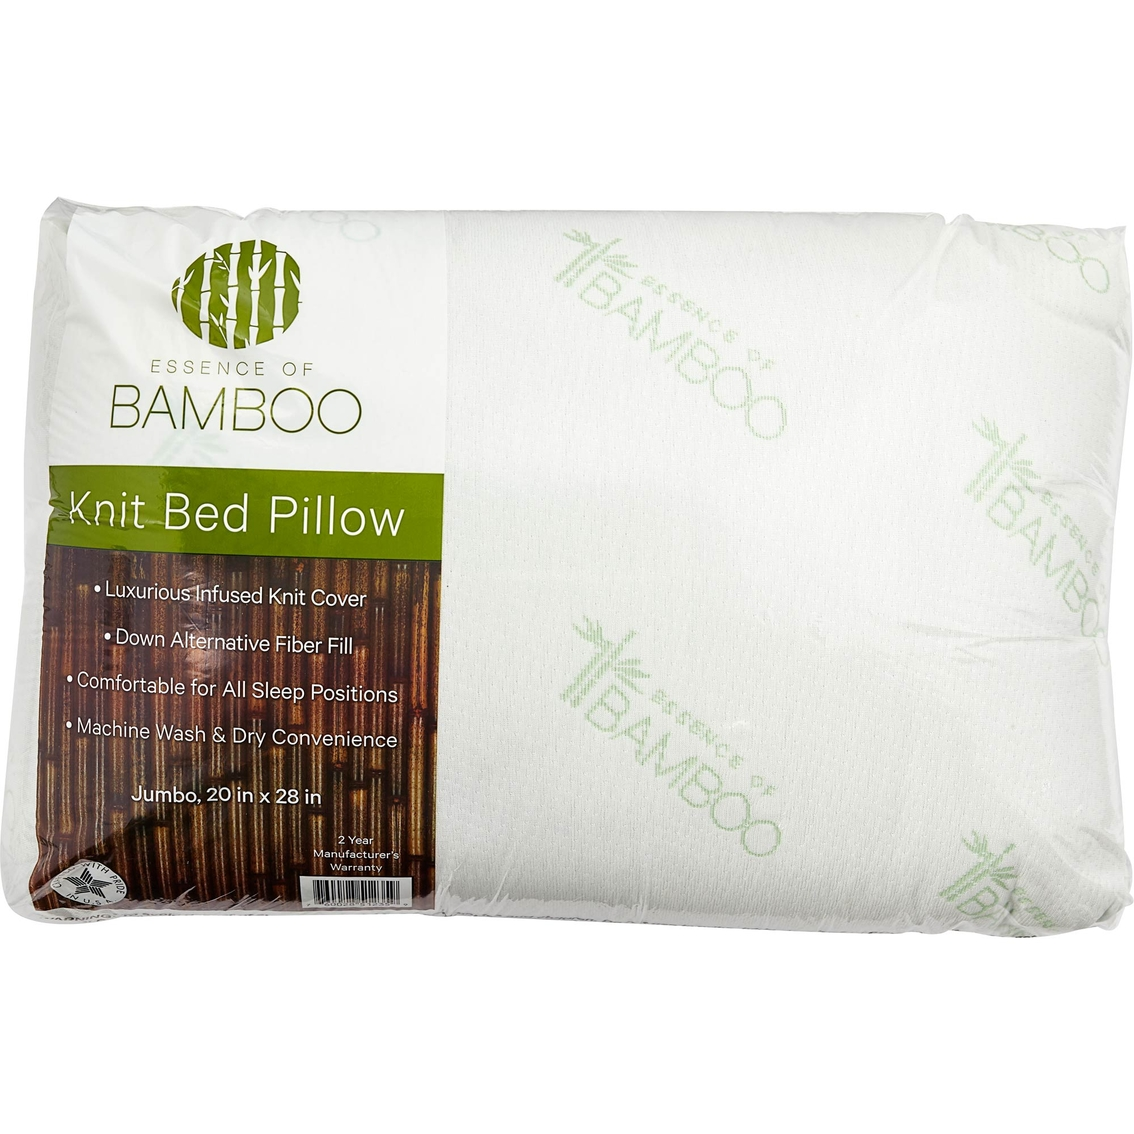 instant pillows toddler kids bamboo relieve kid for with carrying body comes memory bag relief and pain to hypoallergenic dust foam back allergy mite original neck free great products pillow travel